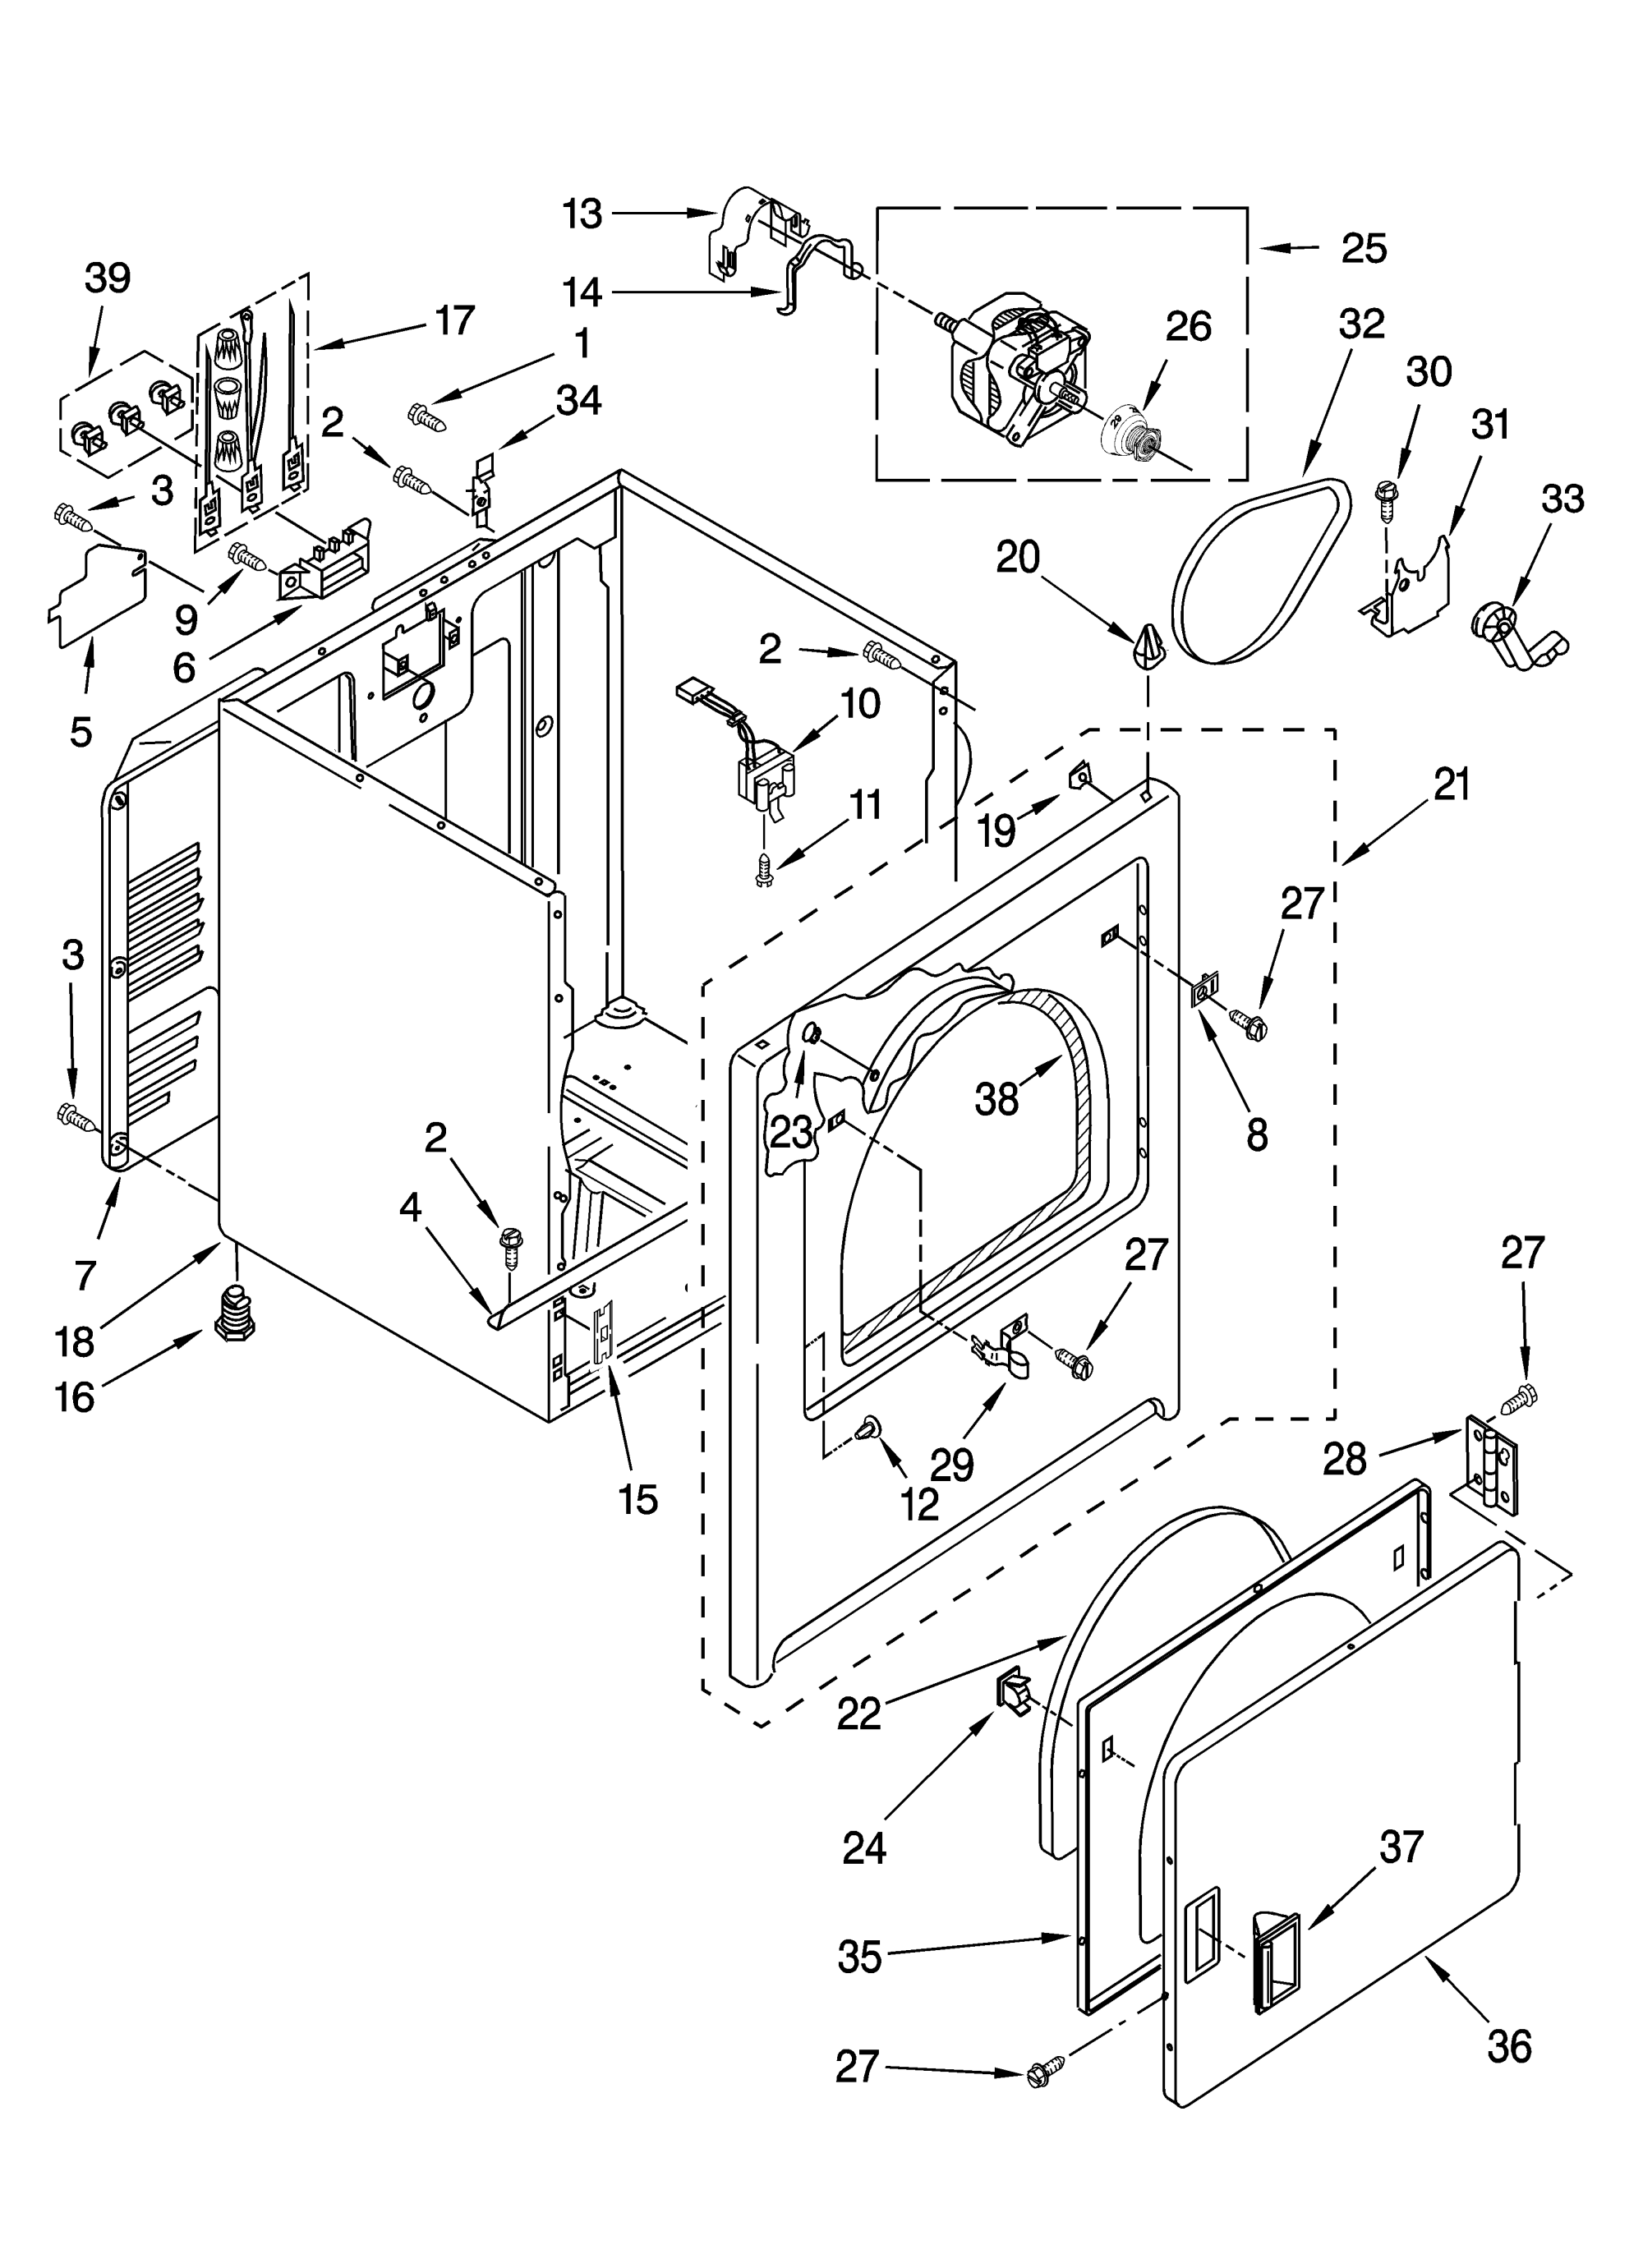 hight resolution of estate eed4400wq0 cabinet parts diagram